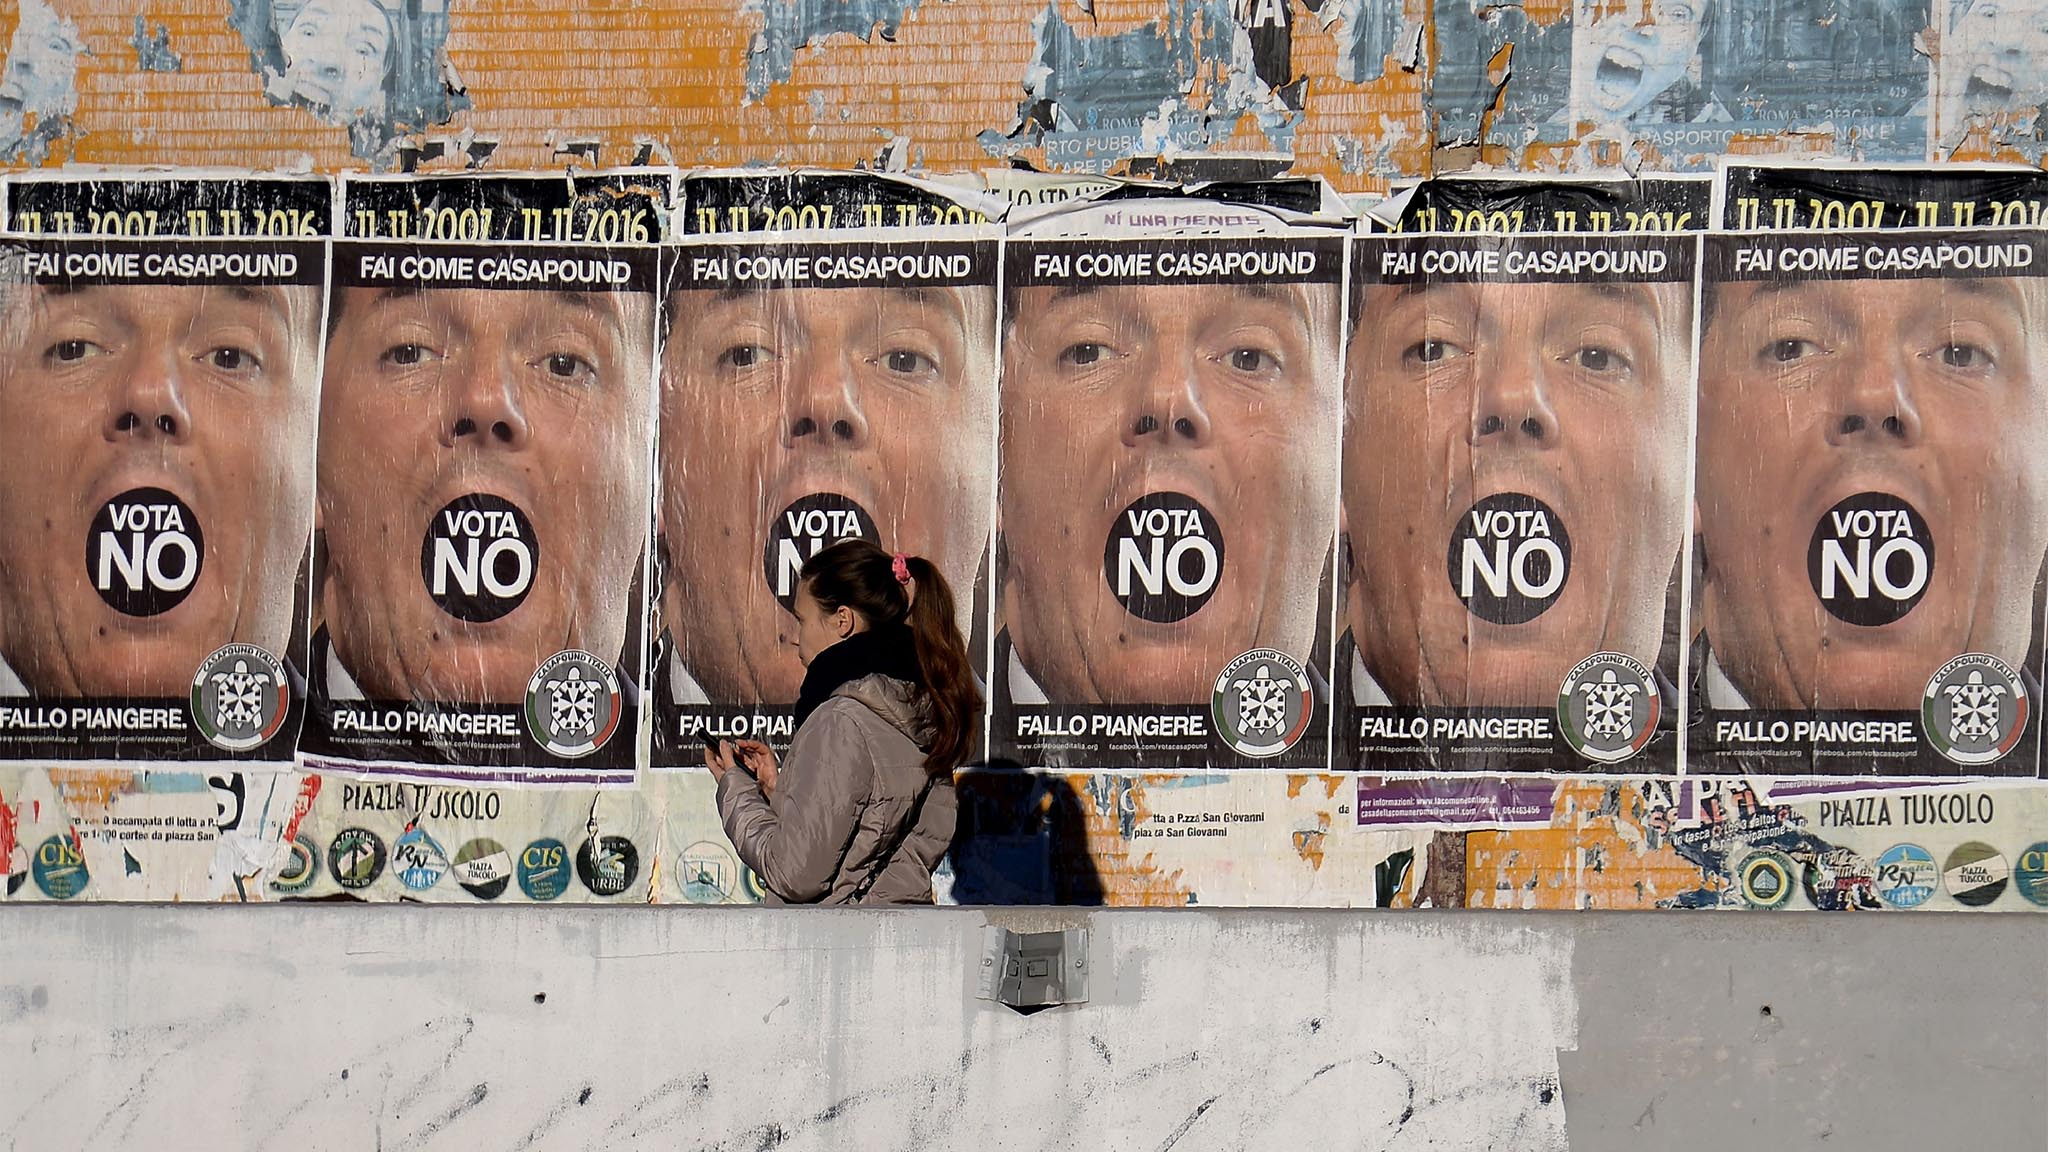 A woman walks past posters from the far-right political movement Casapound